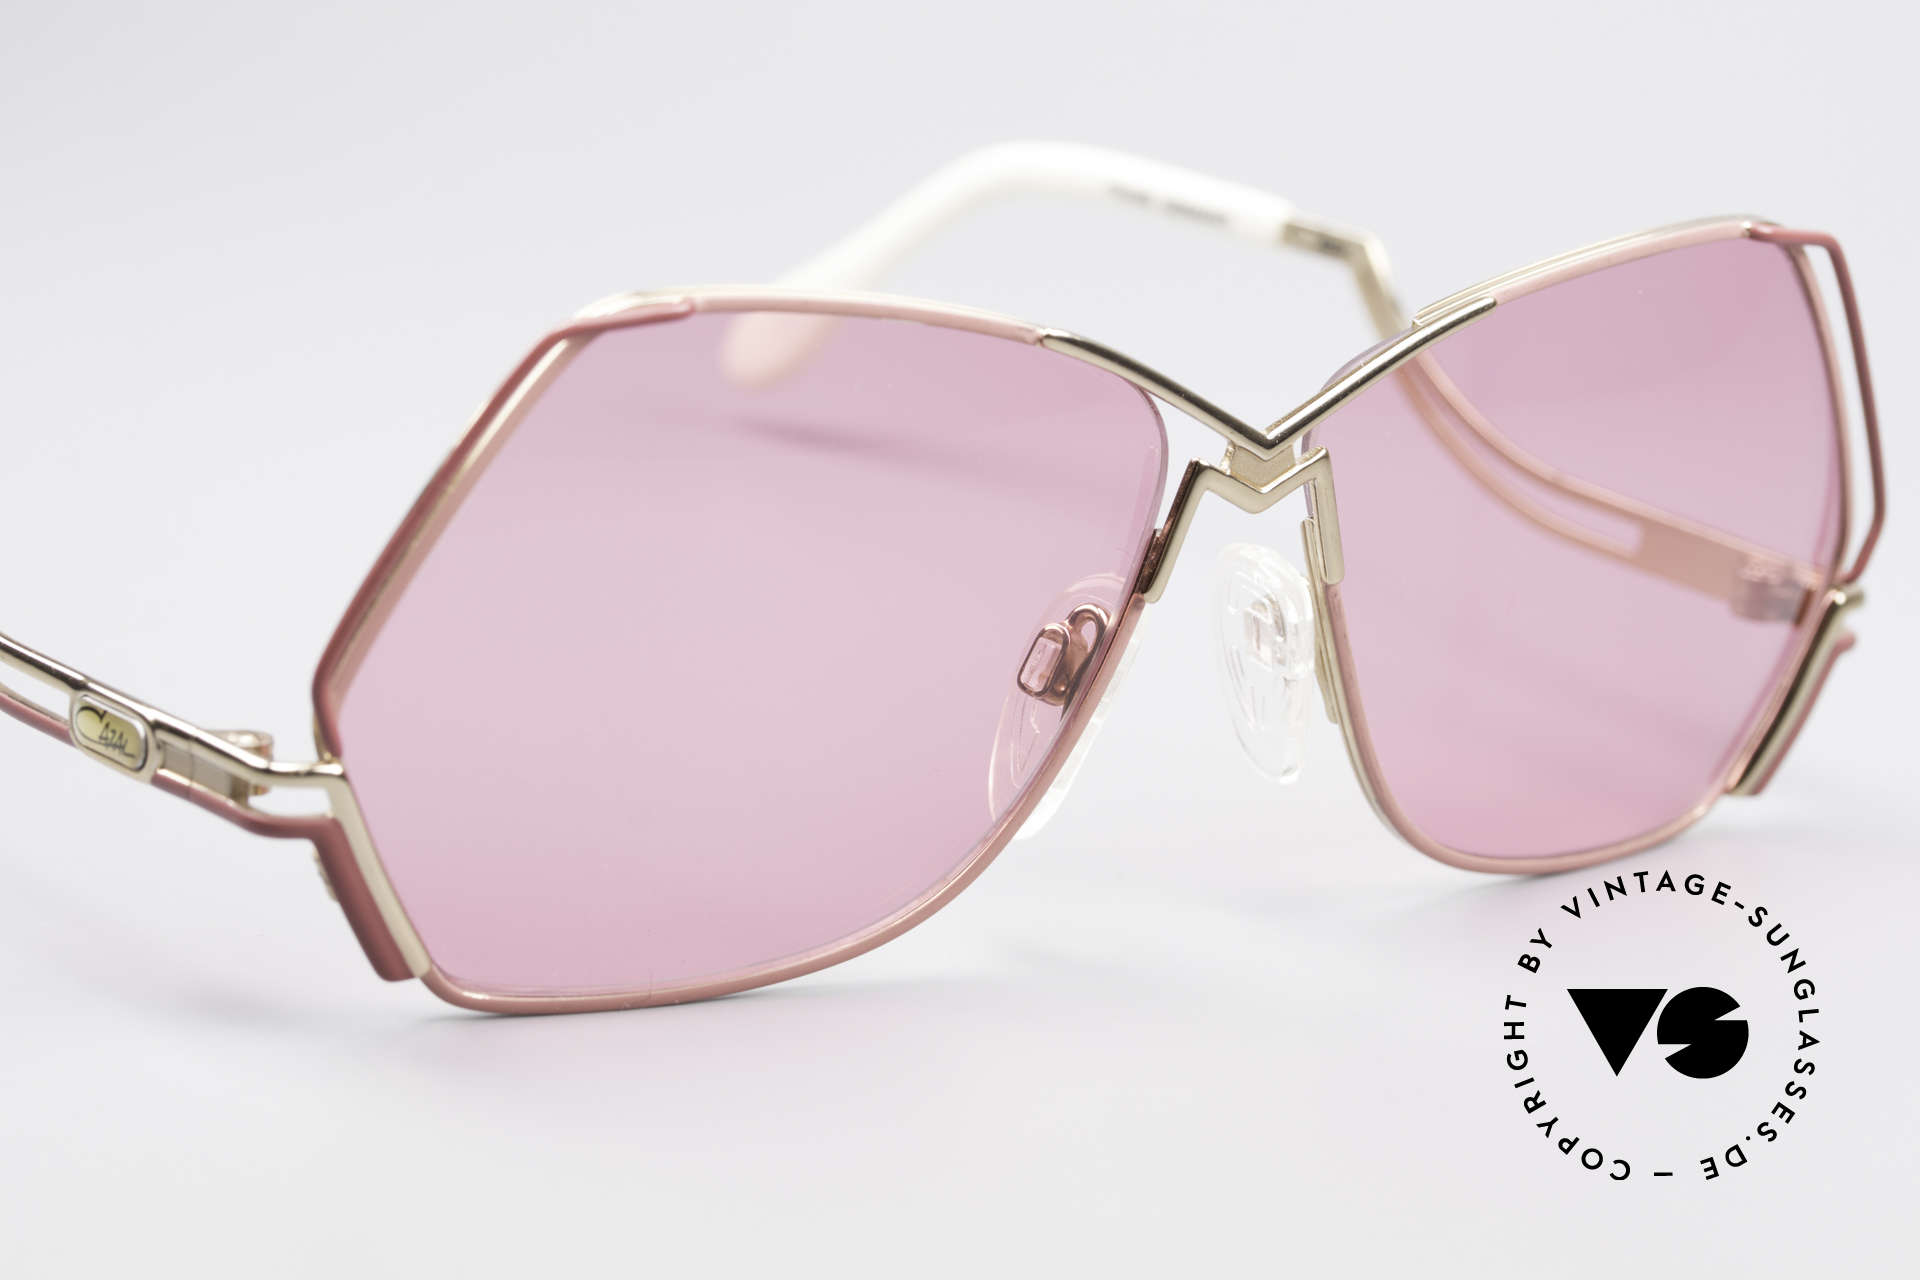 Cazal 226 Pink Vintage Ladies Sunglasses, new old stock, NOS (like all our rare old Cazal eyewear), Made for Women